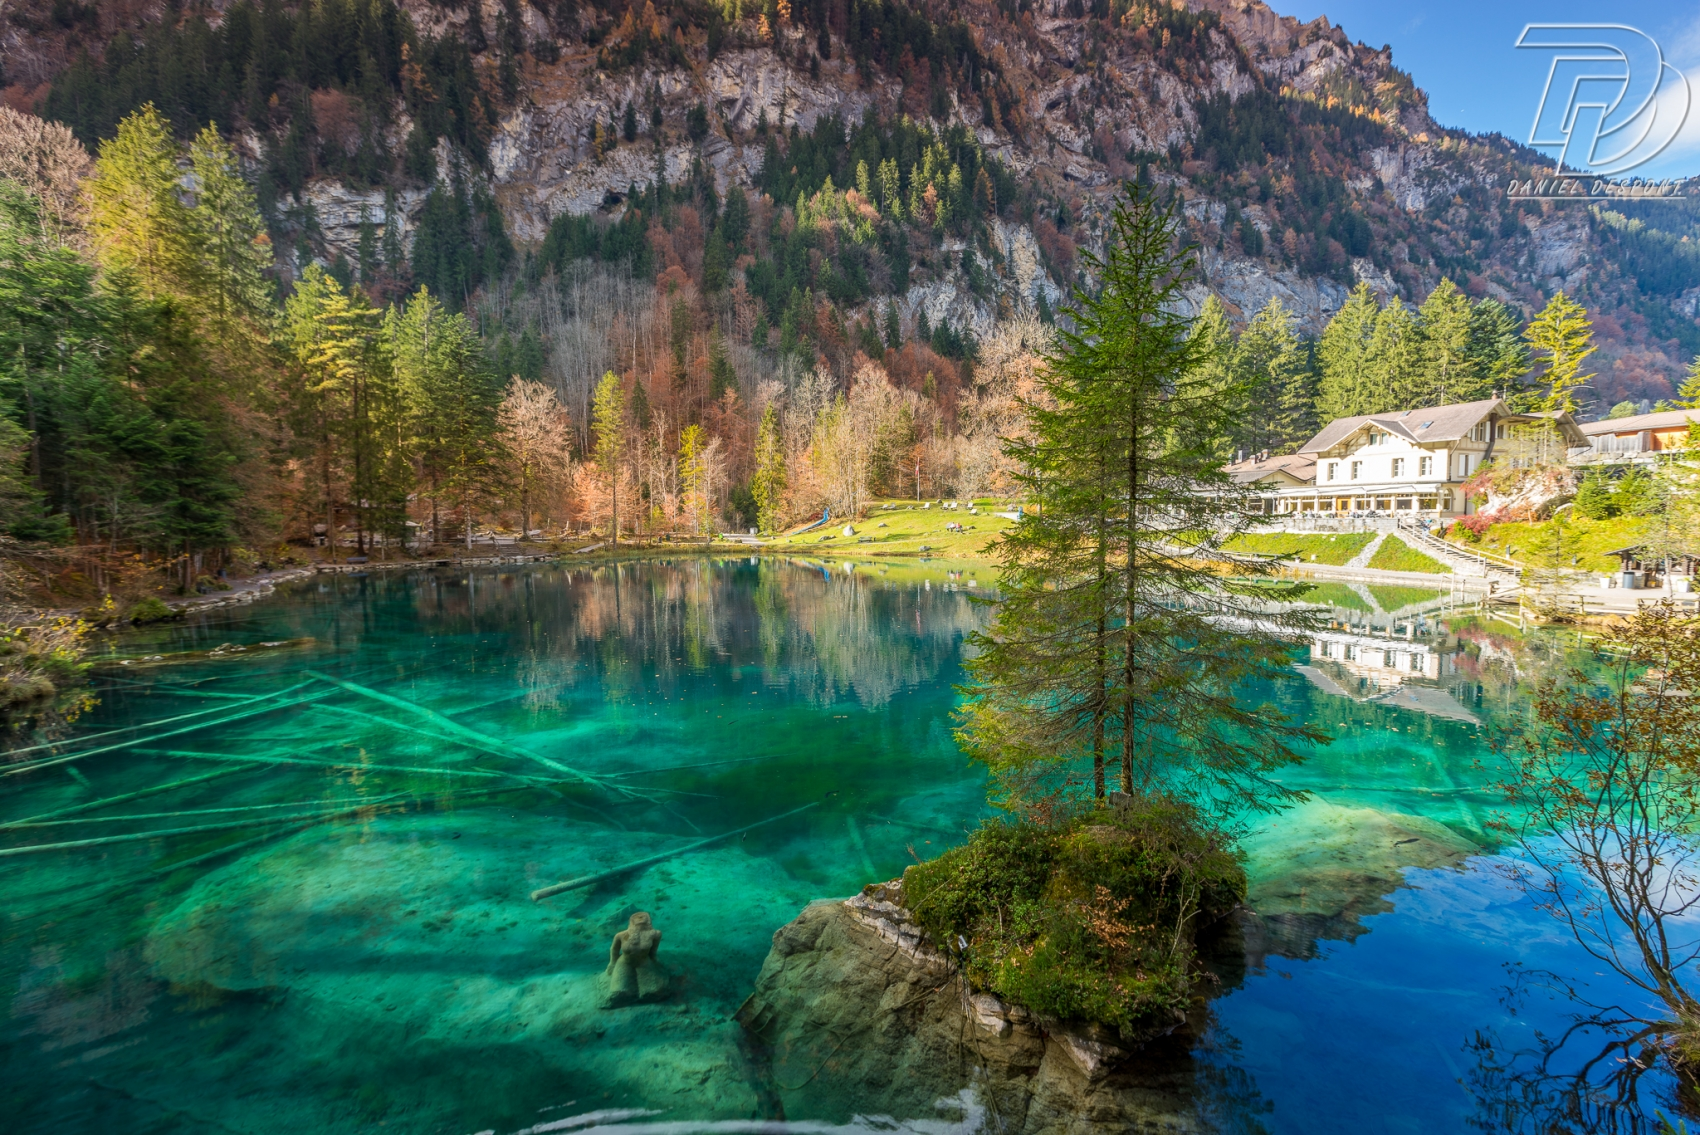 Le mythique Blausee, BE